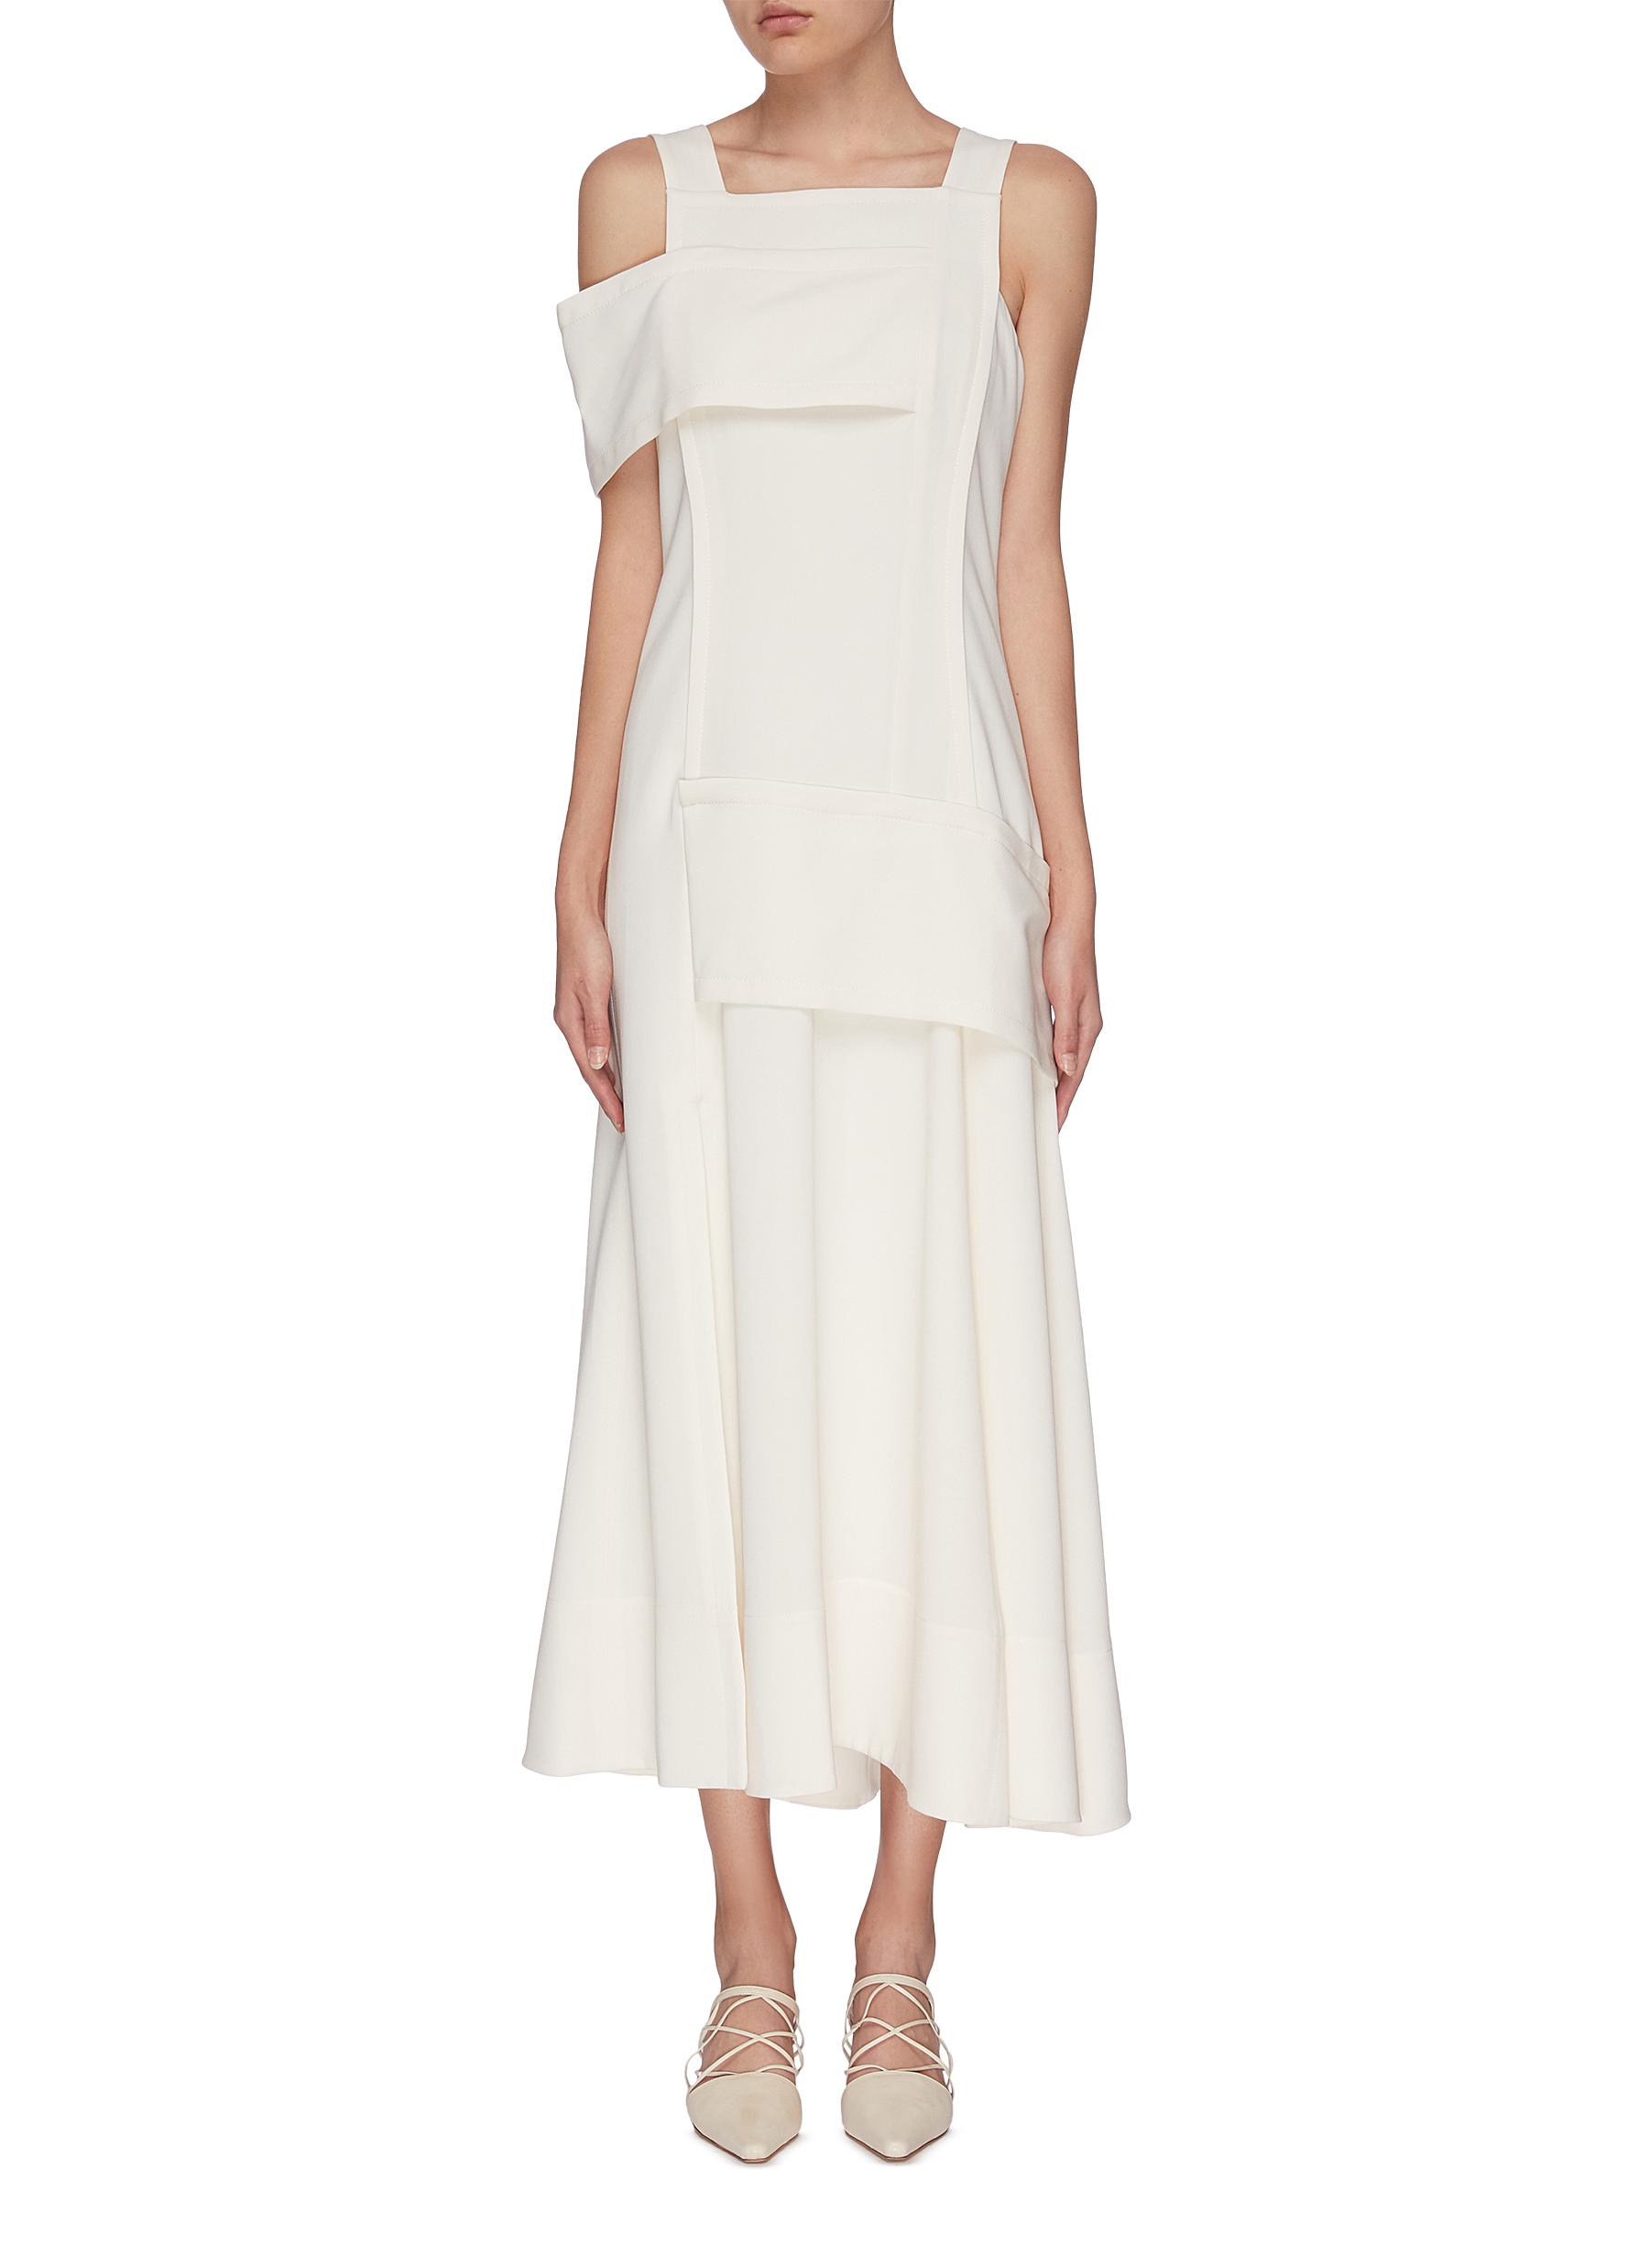 Buy 3.1 Phillip Lim Dresses Asymmetric cold shoulder crepe dress